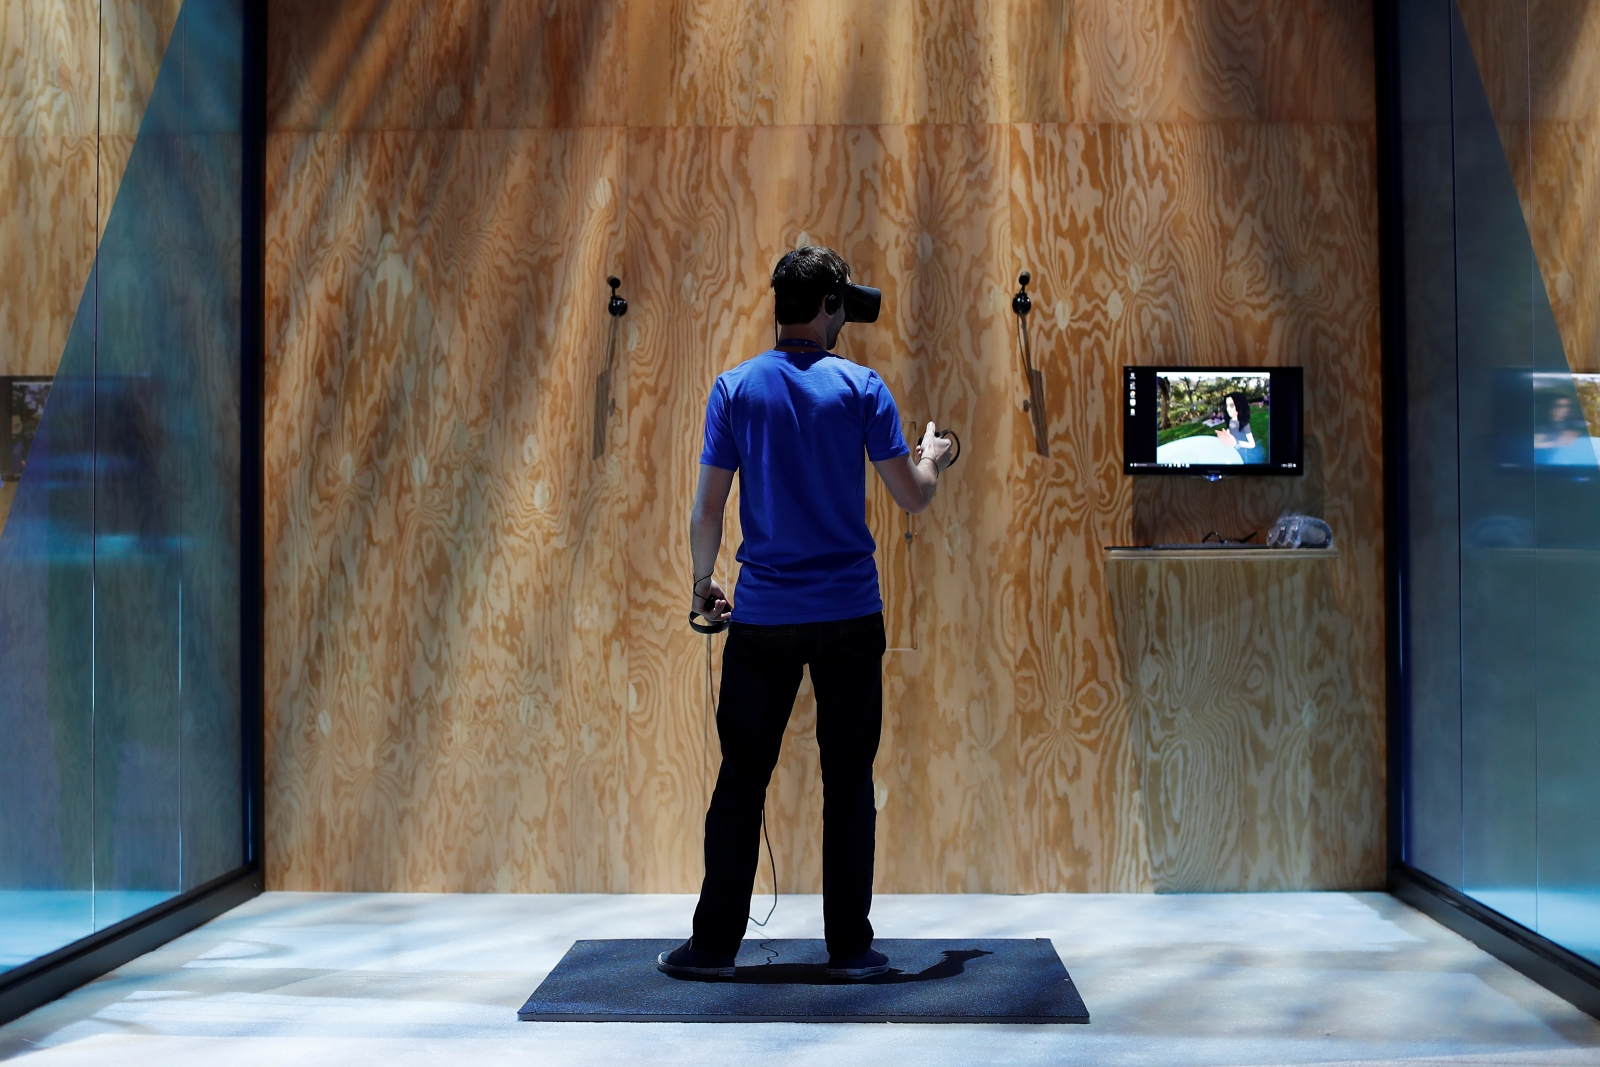 VR at Facebook's F8 conference